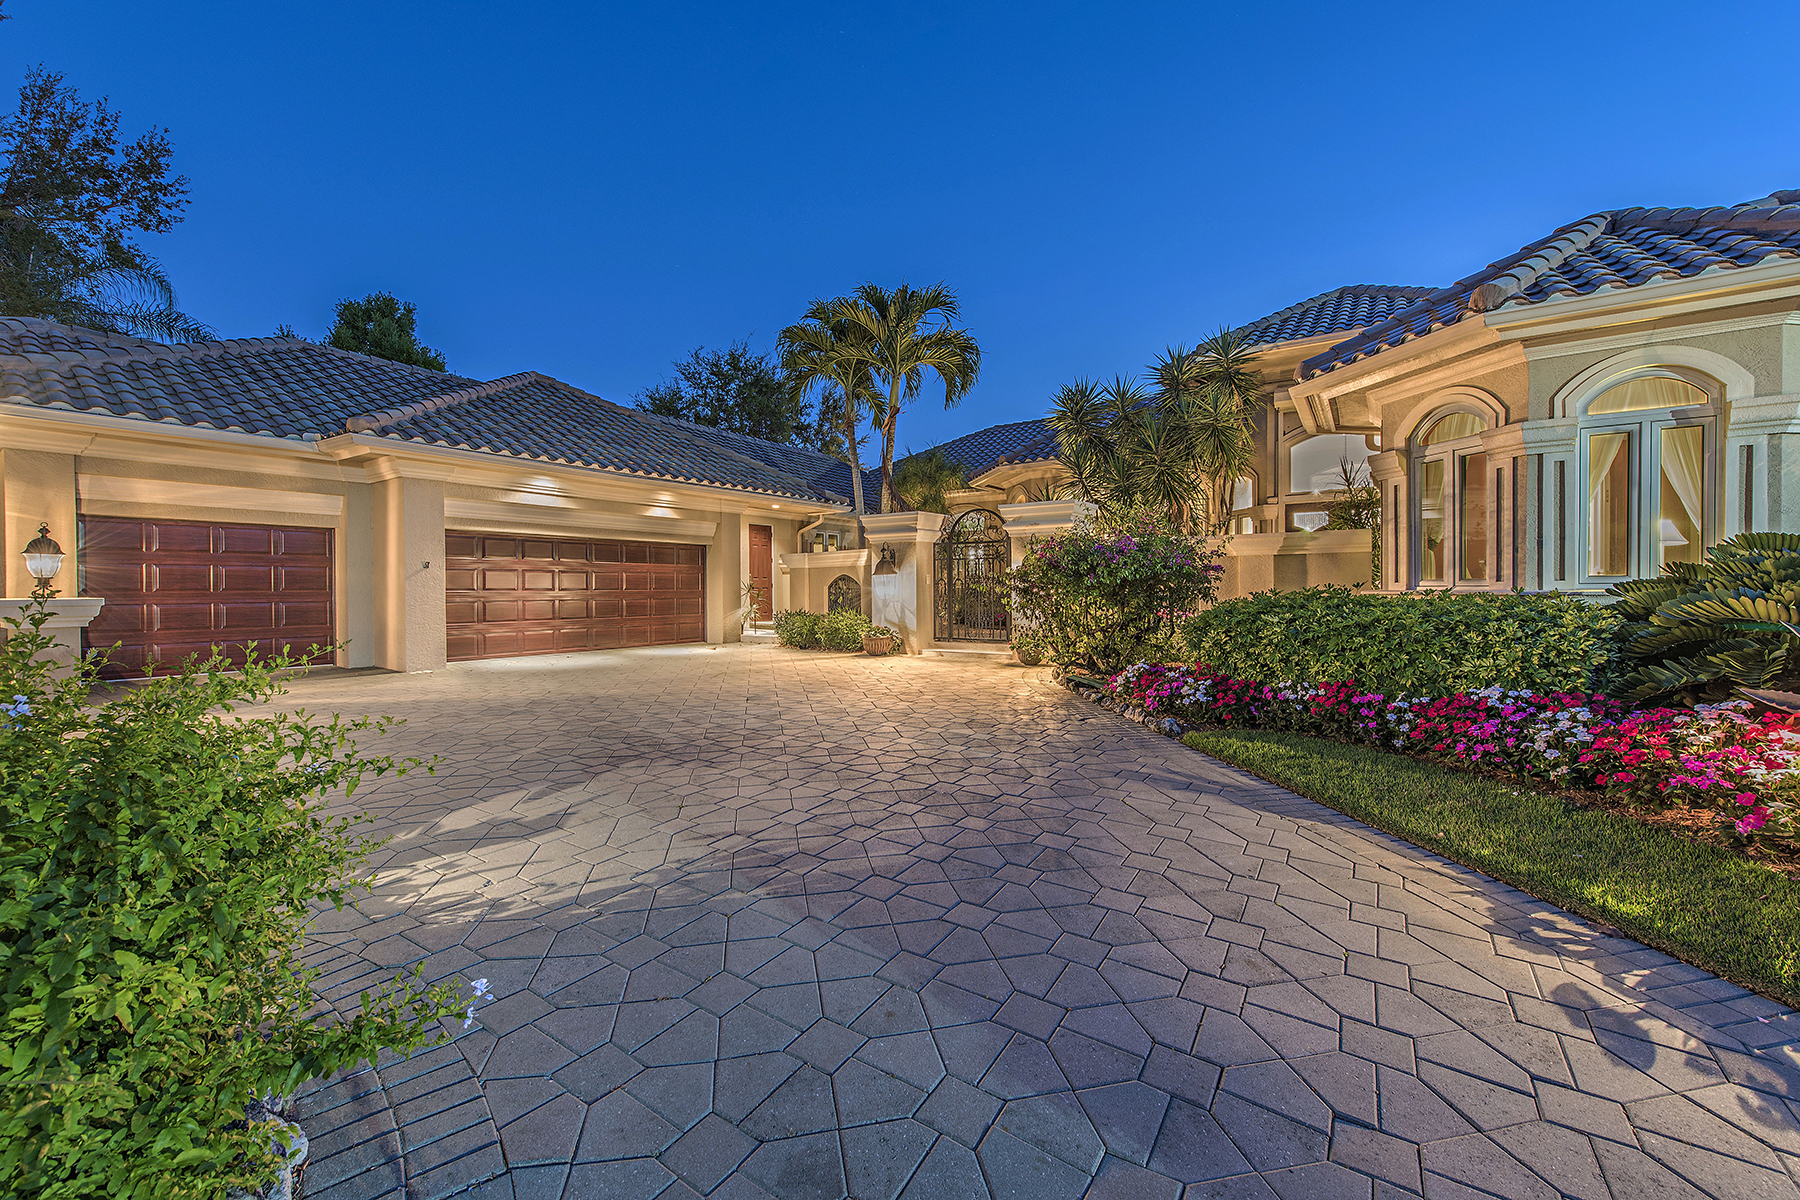 Single Family Home for Sale at PELICAN MARSH - ARBORS 1308 Little Blue Heron Ct Naples, Florida, 34108 United States